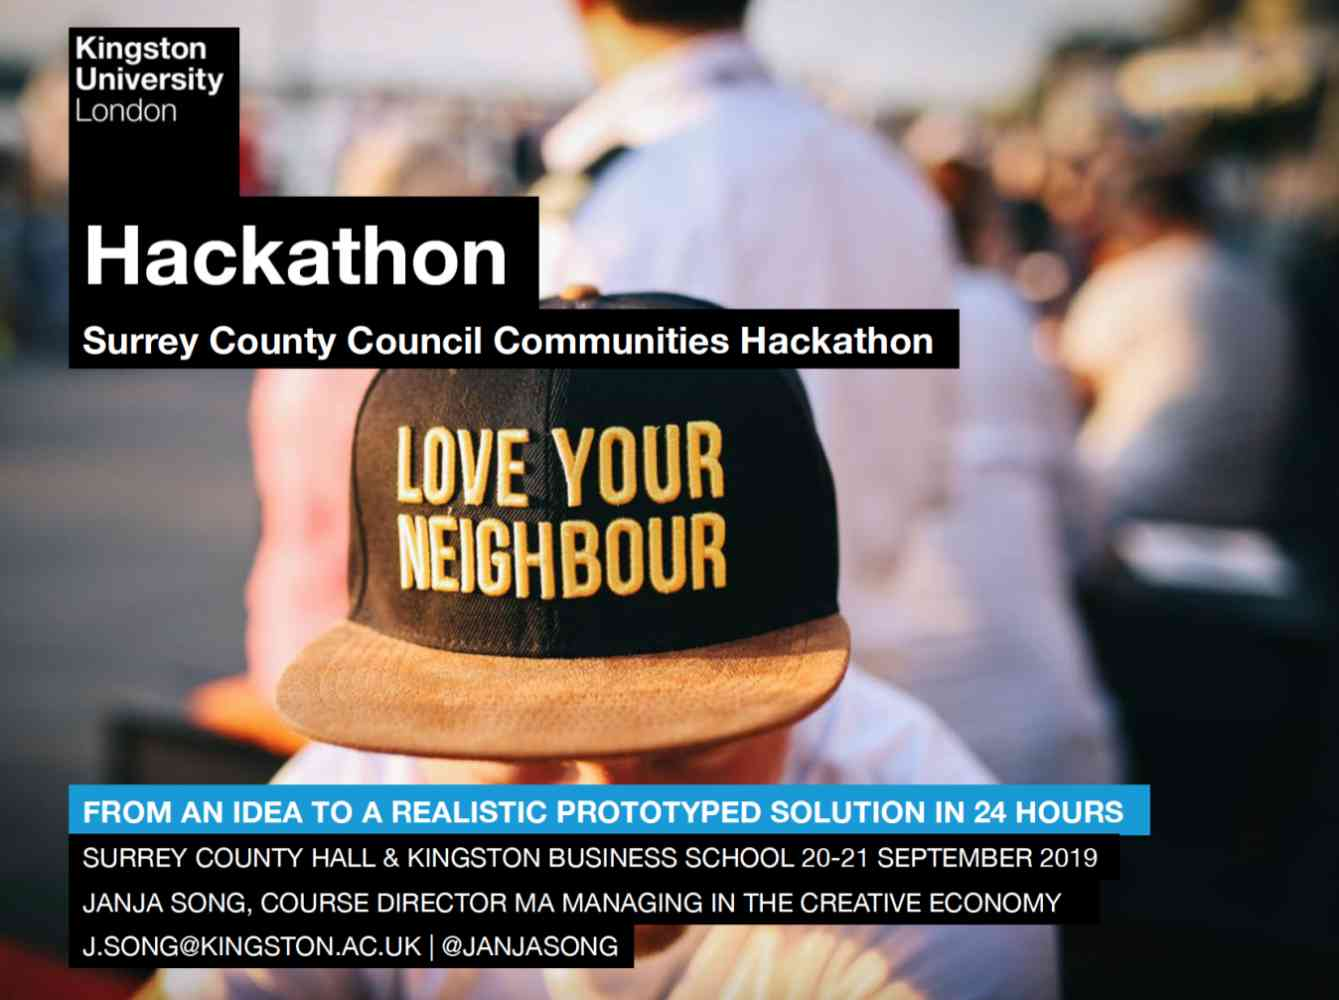 MA Creative Economy Hackathon, Welcome Week 2019 - MA Creative Economy x Surrey County Council Hackathon https://macekingstonuniversity.com/2019/10/16/photos-from-the-ma-creative-economy-hackathon-welcome-week-2019/